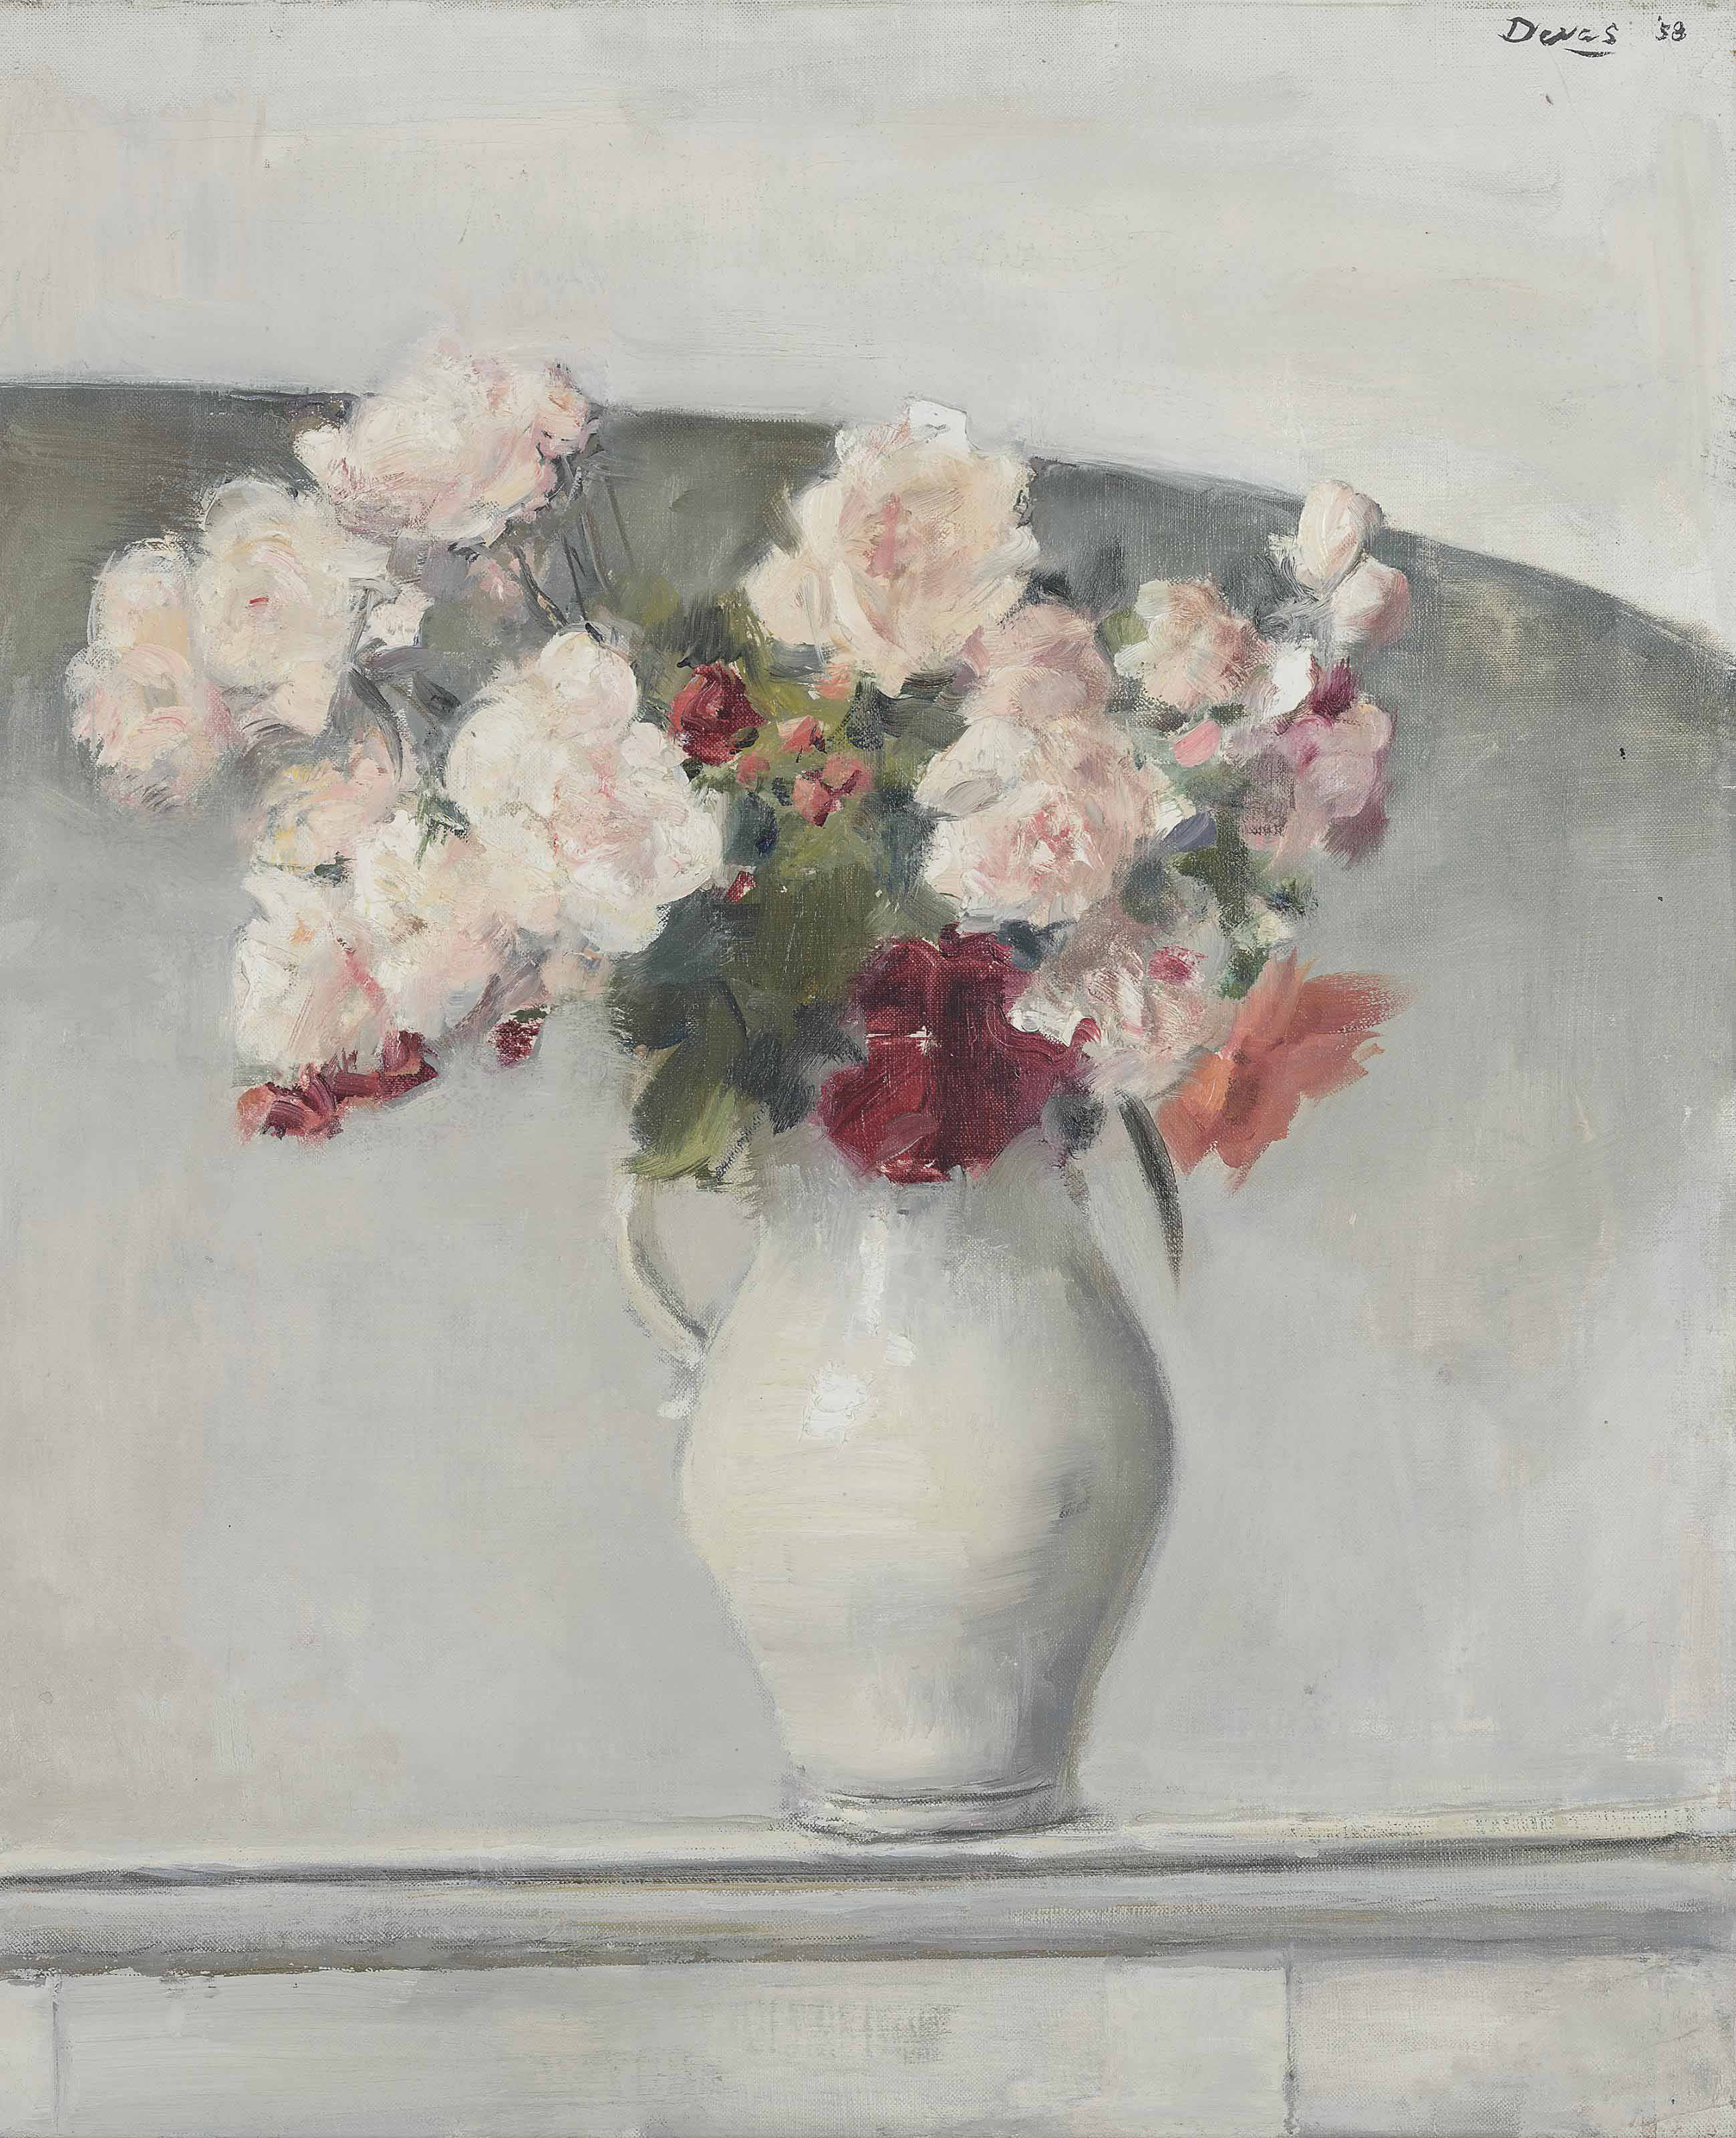 Flowers in a white jug